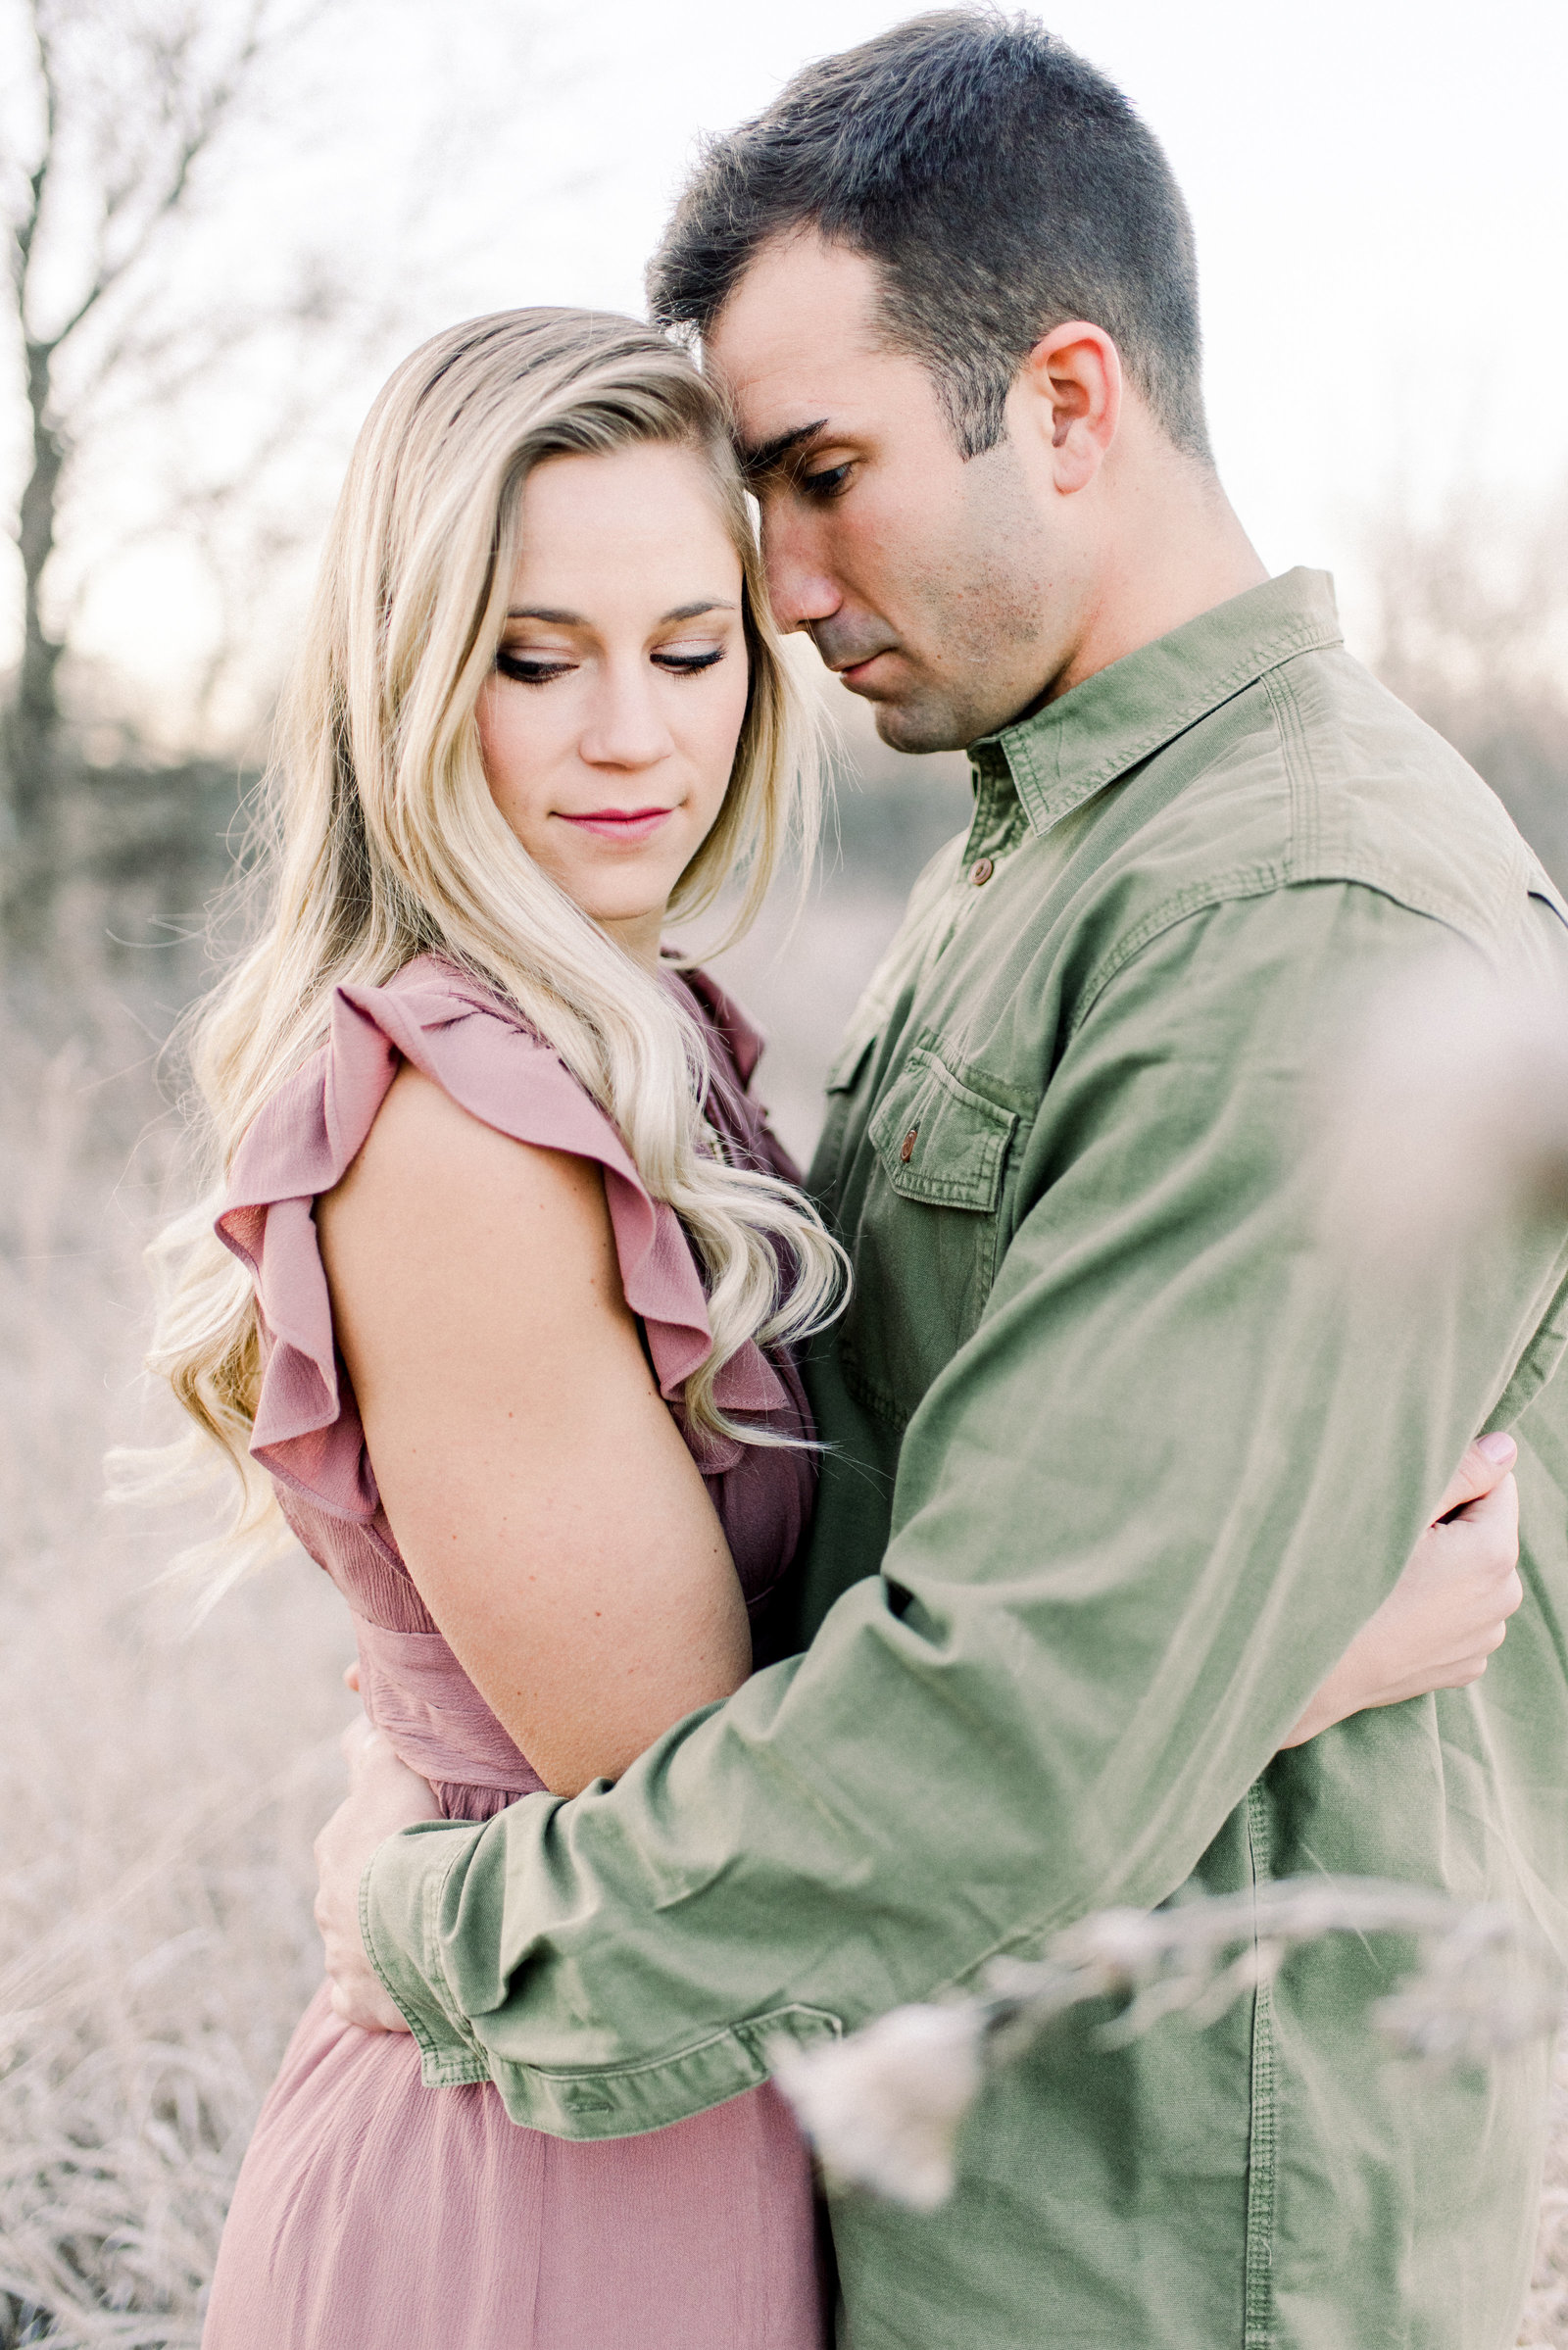 Winter_Sunrise_Photo_Shoot_Kansas_City_Ashley+Jonny2019-5